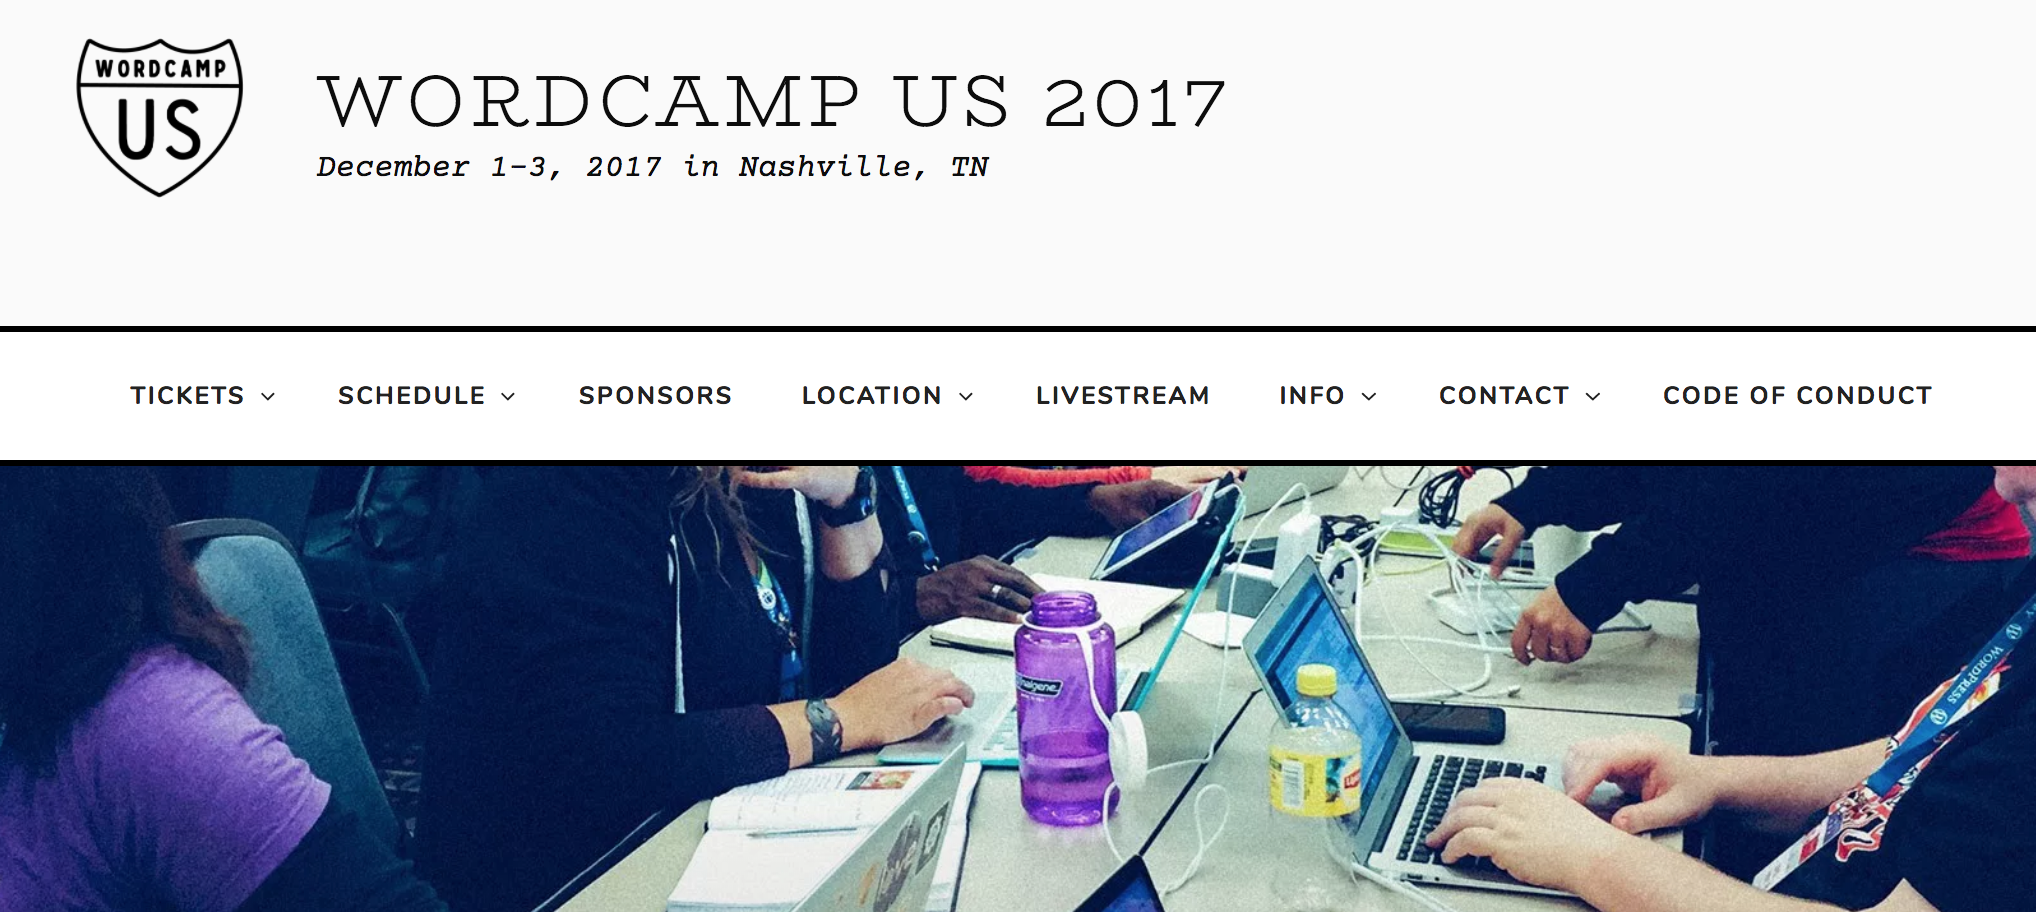 WordCamp US 2017 Recap